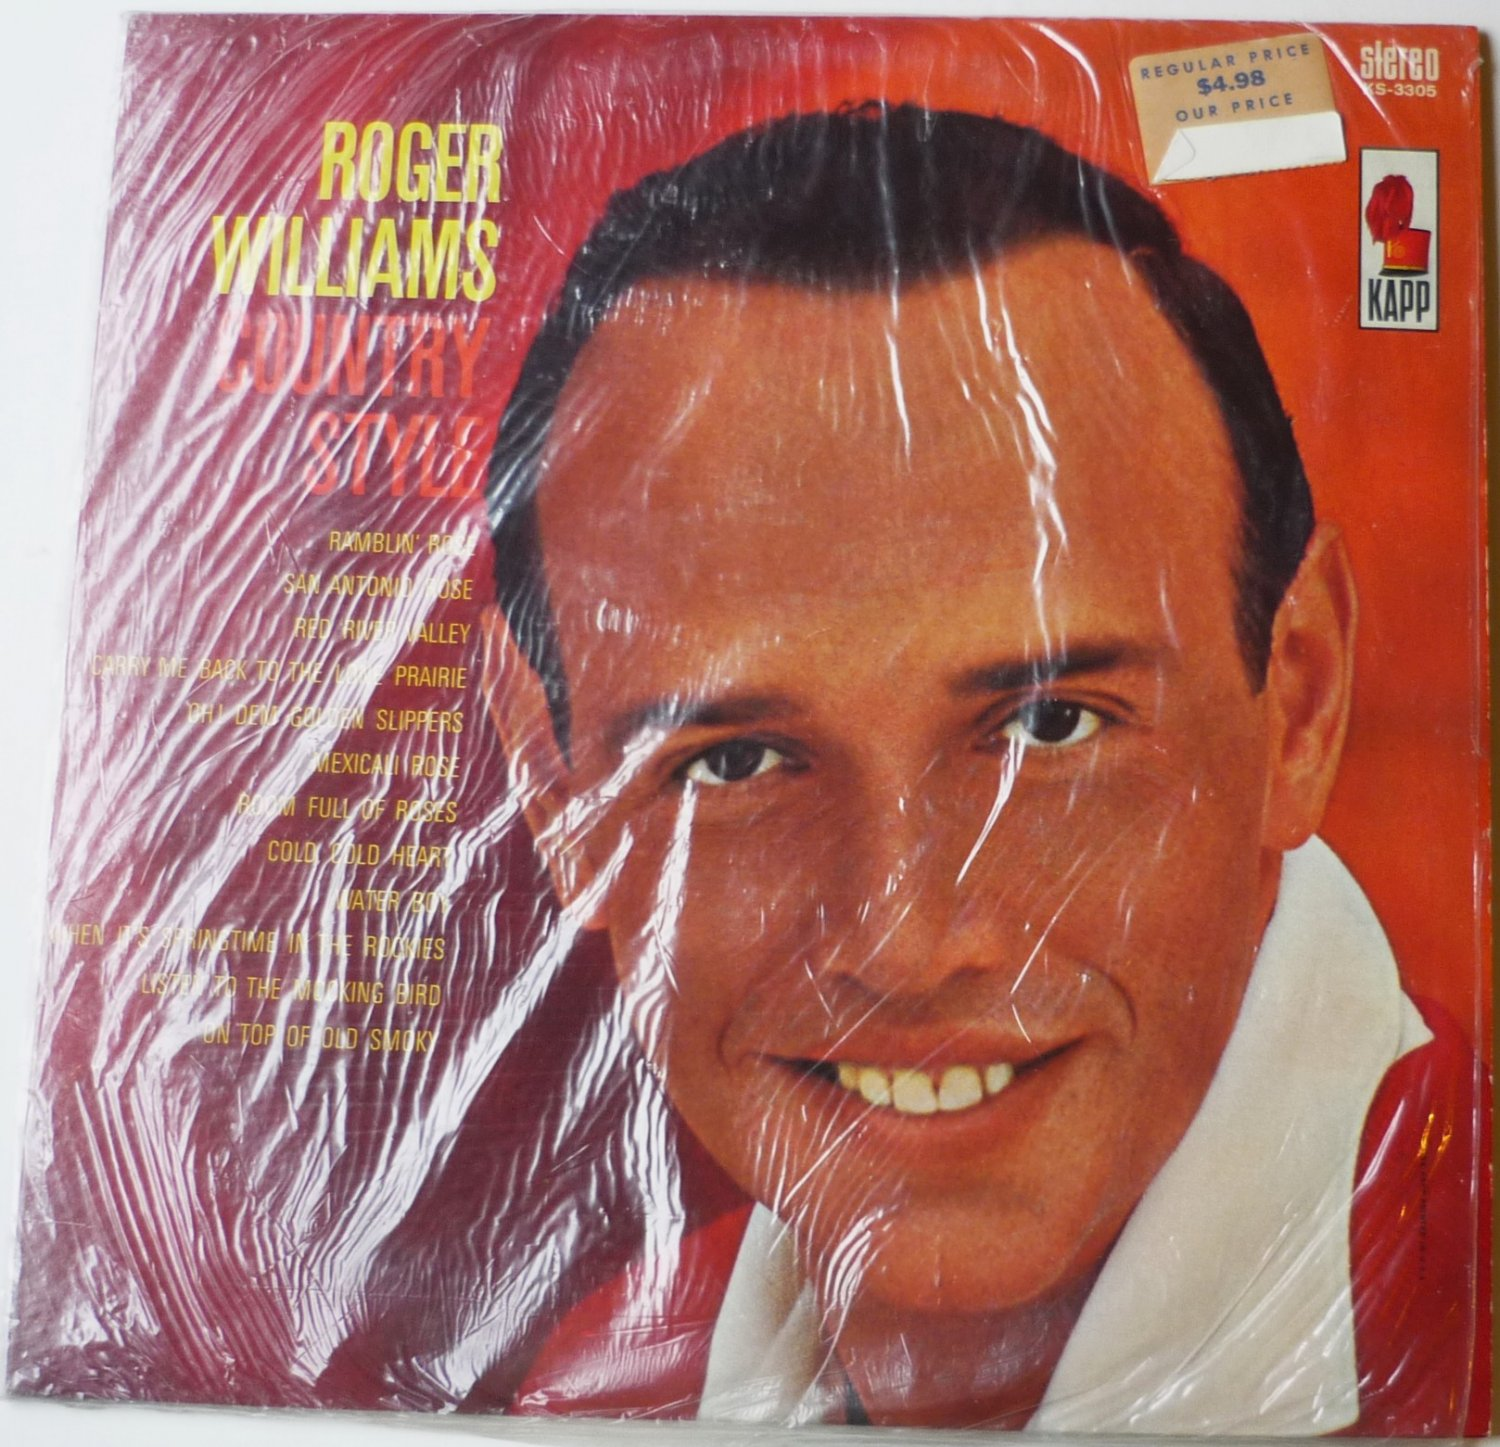 Country Style lp by Roger Williams